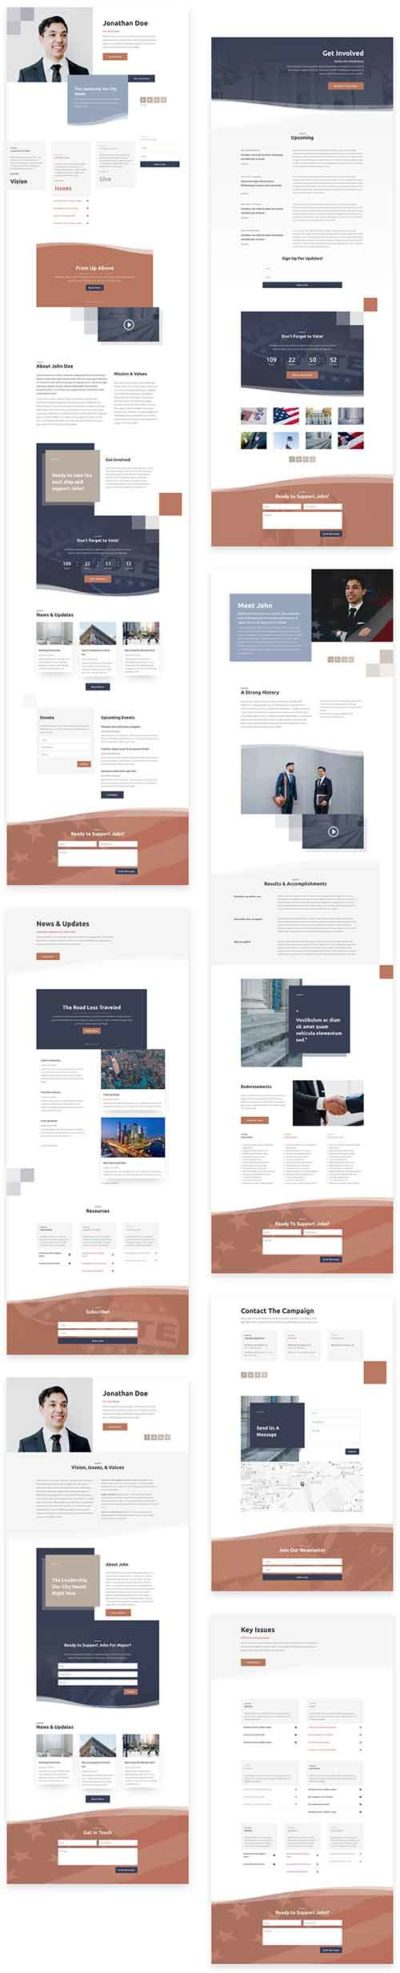 divi politician layout pack